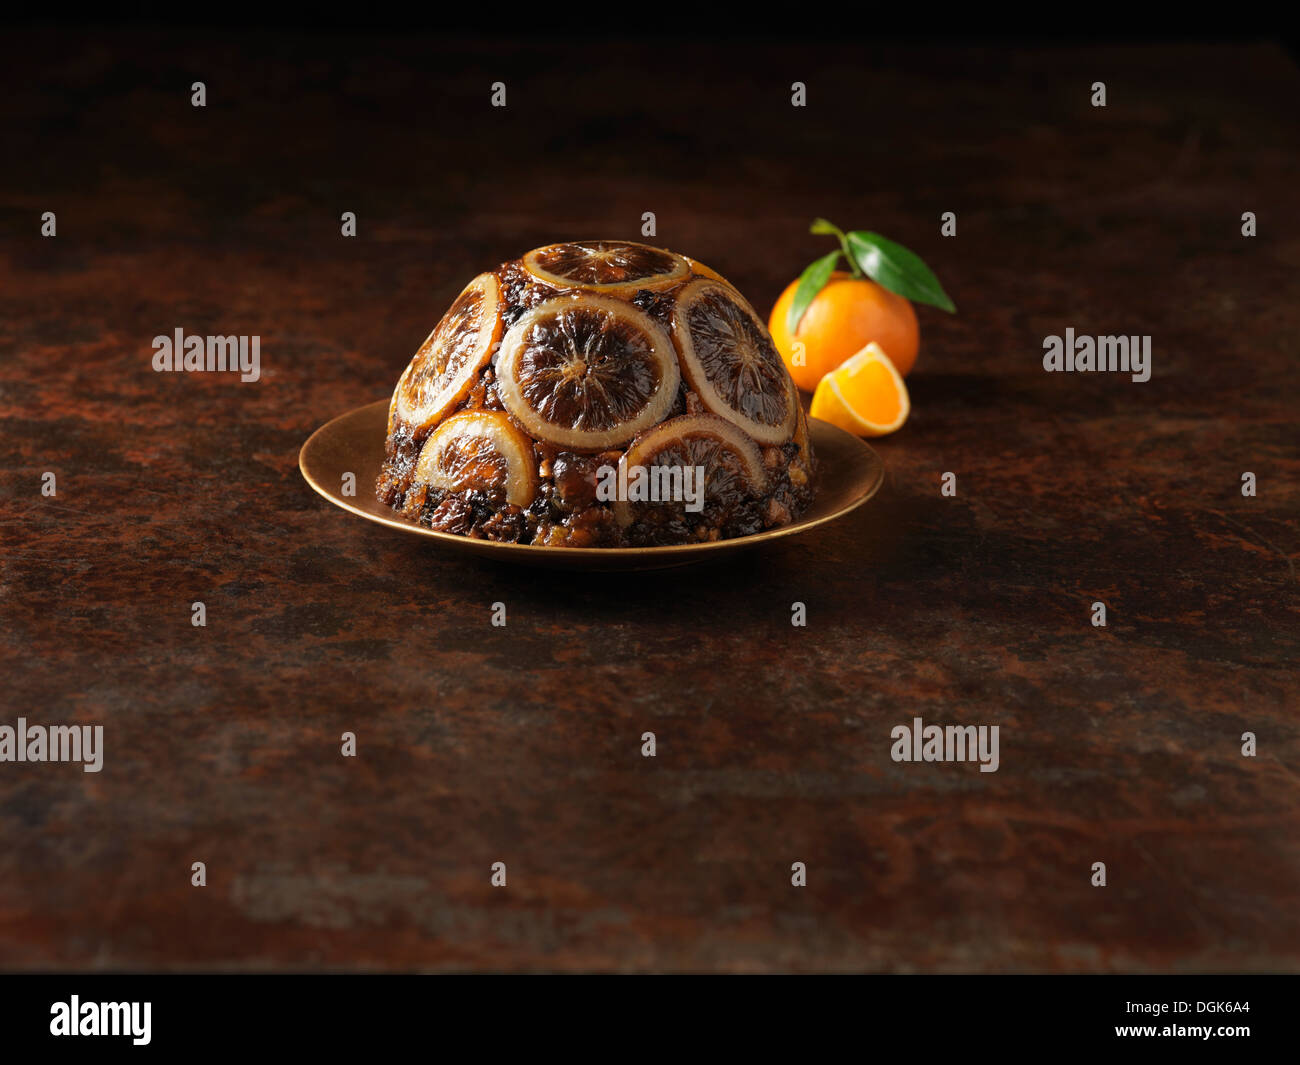 Christmas pudding decorated with sliced oranges - Stock Image